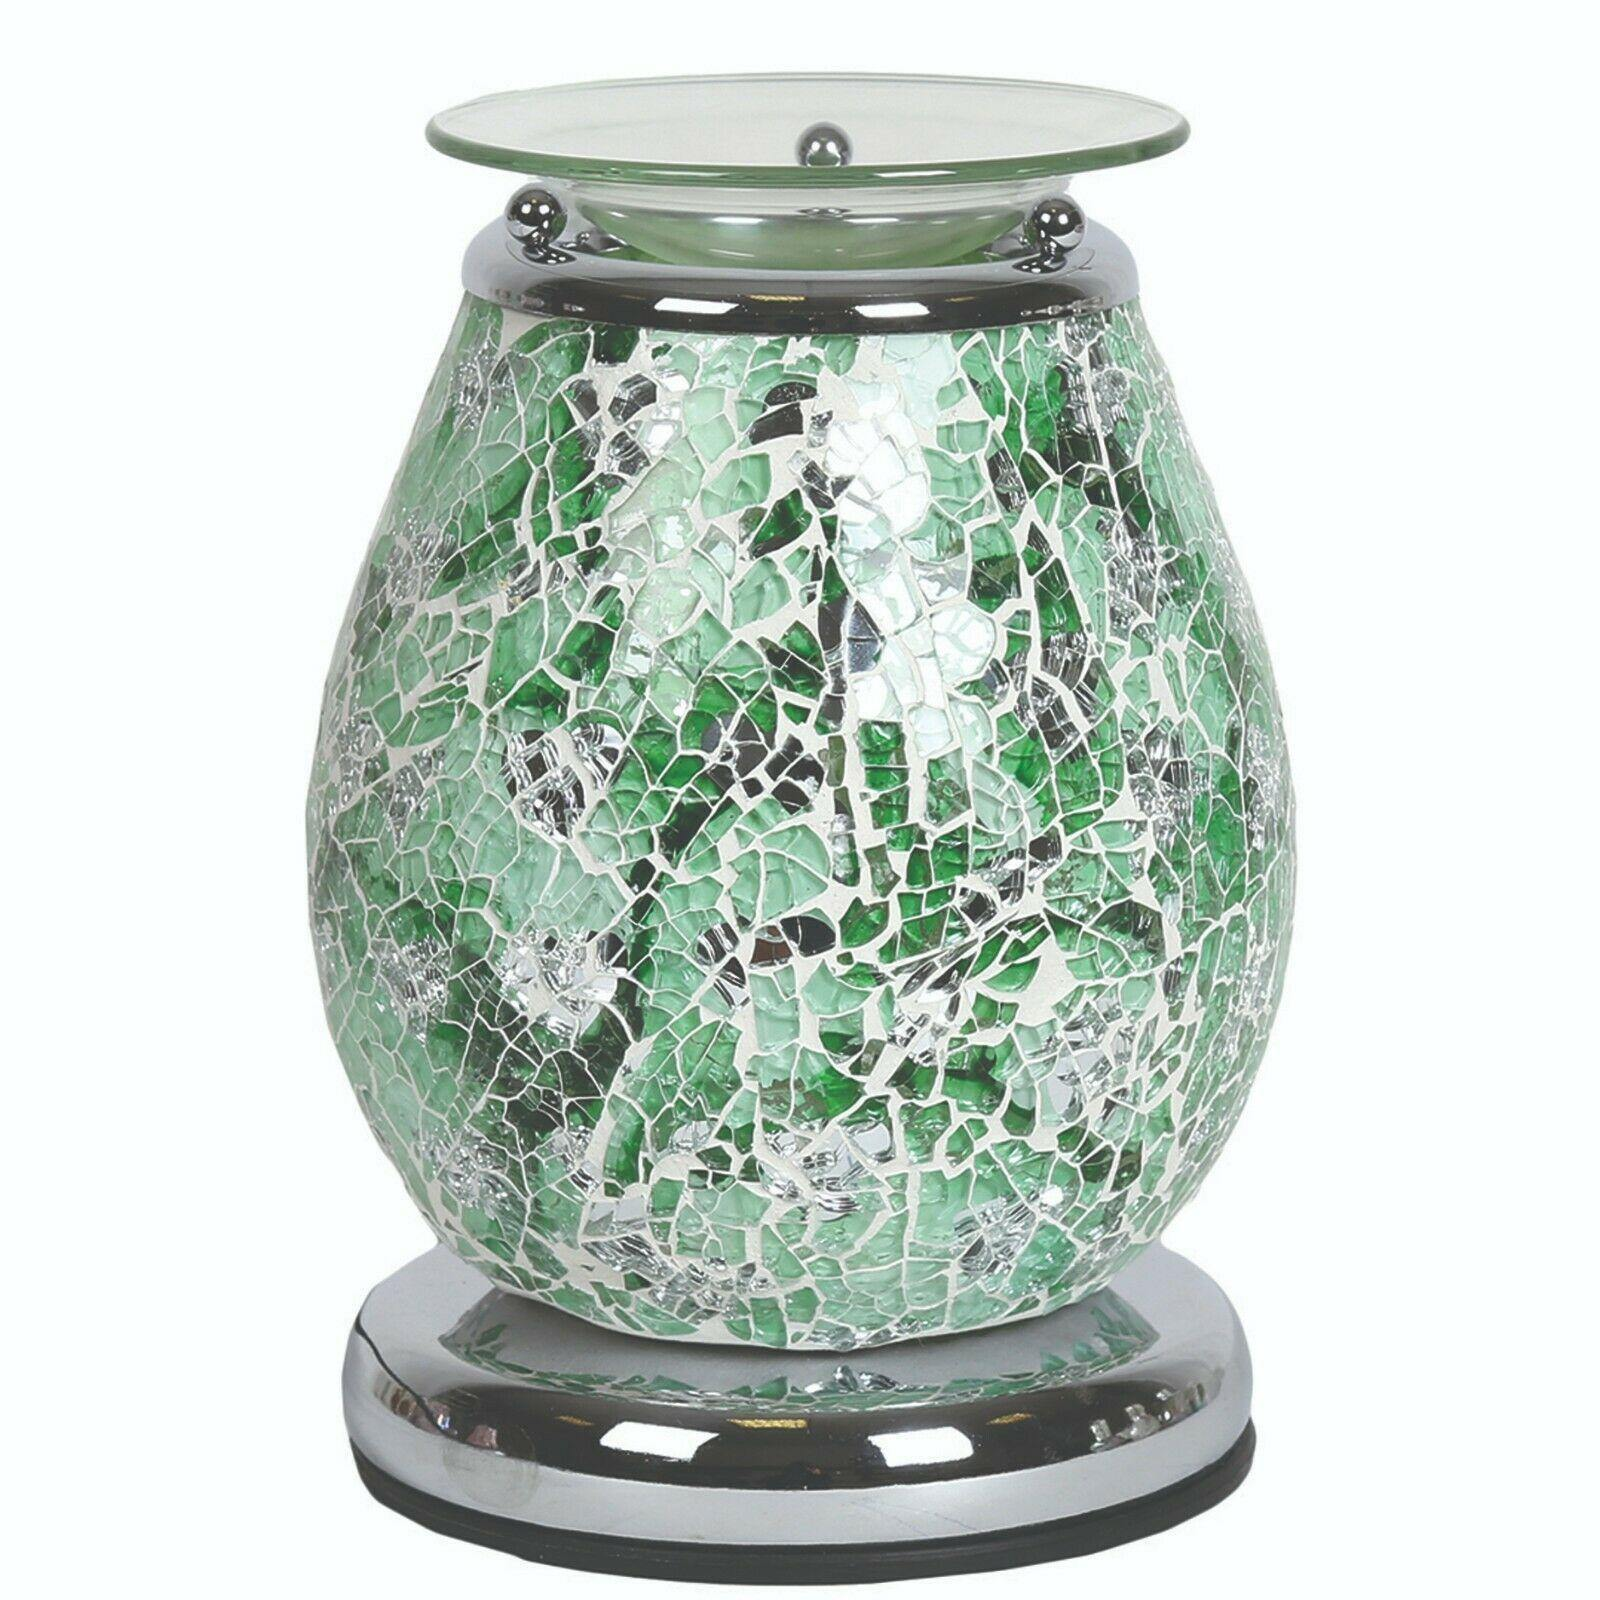 Aroma Accessories Aphrodite Mosaic Touch Electric Wax Melt Warmer - TOSYS Candles and Gifts